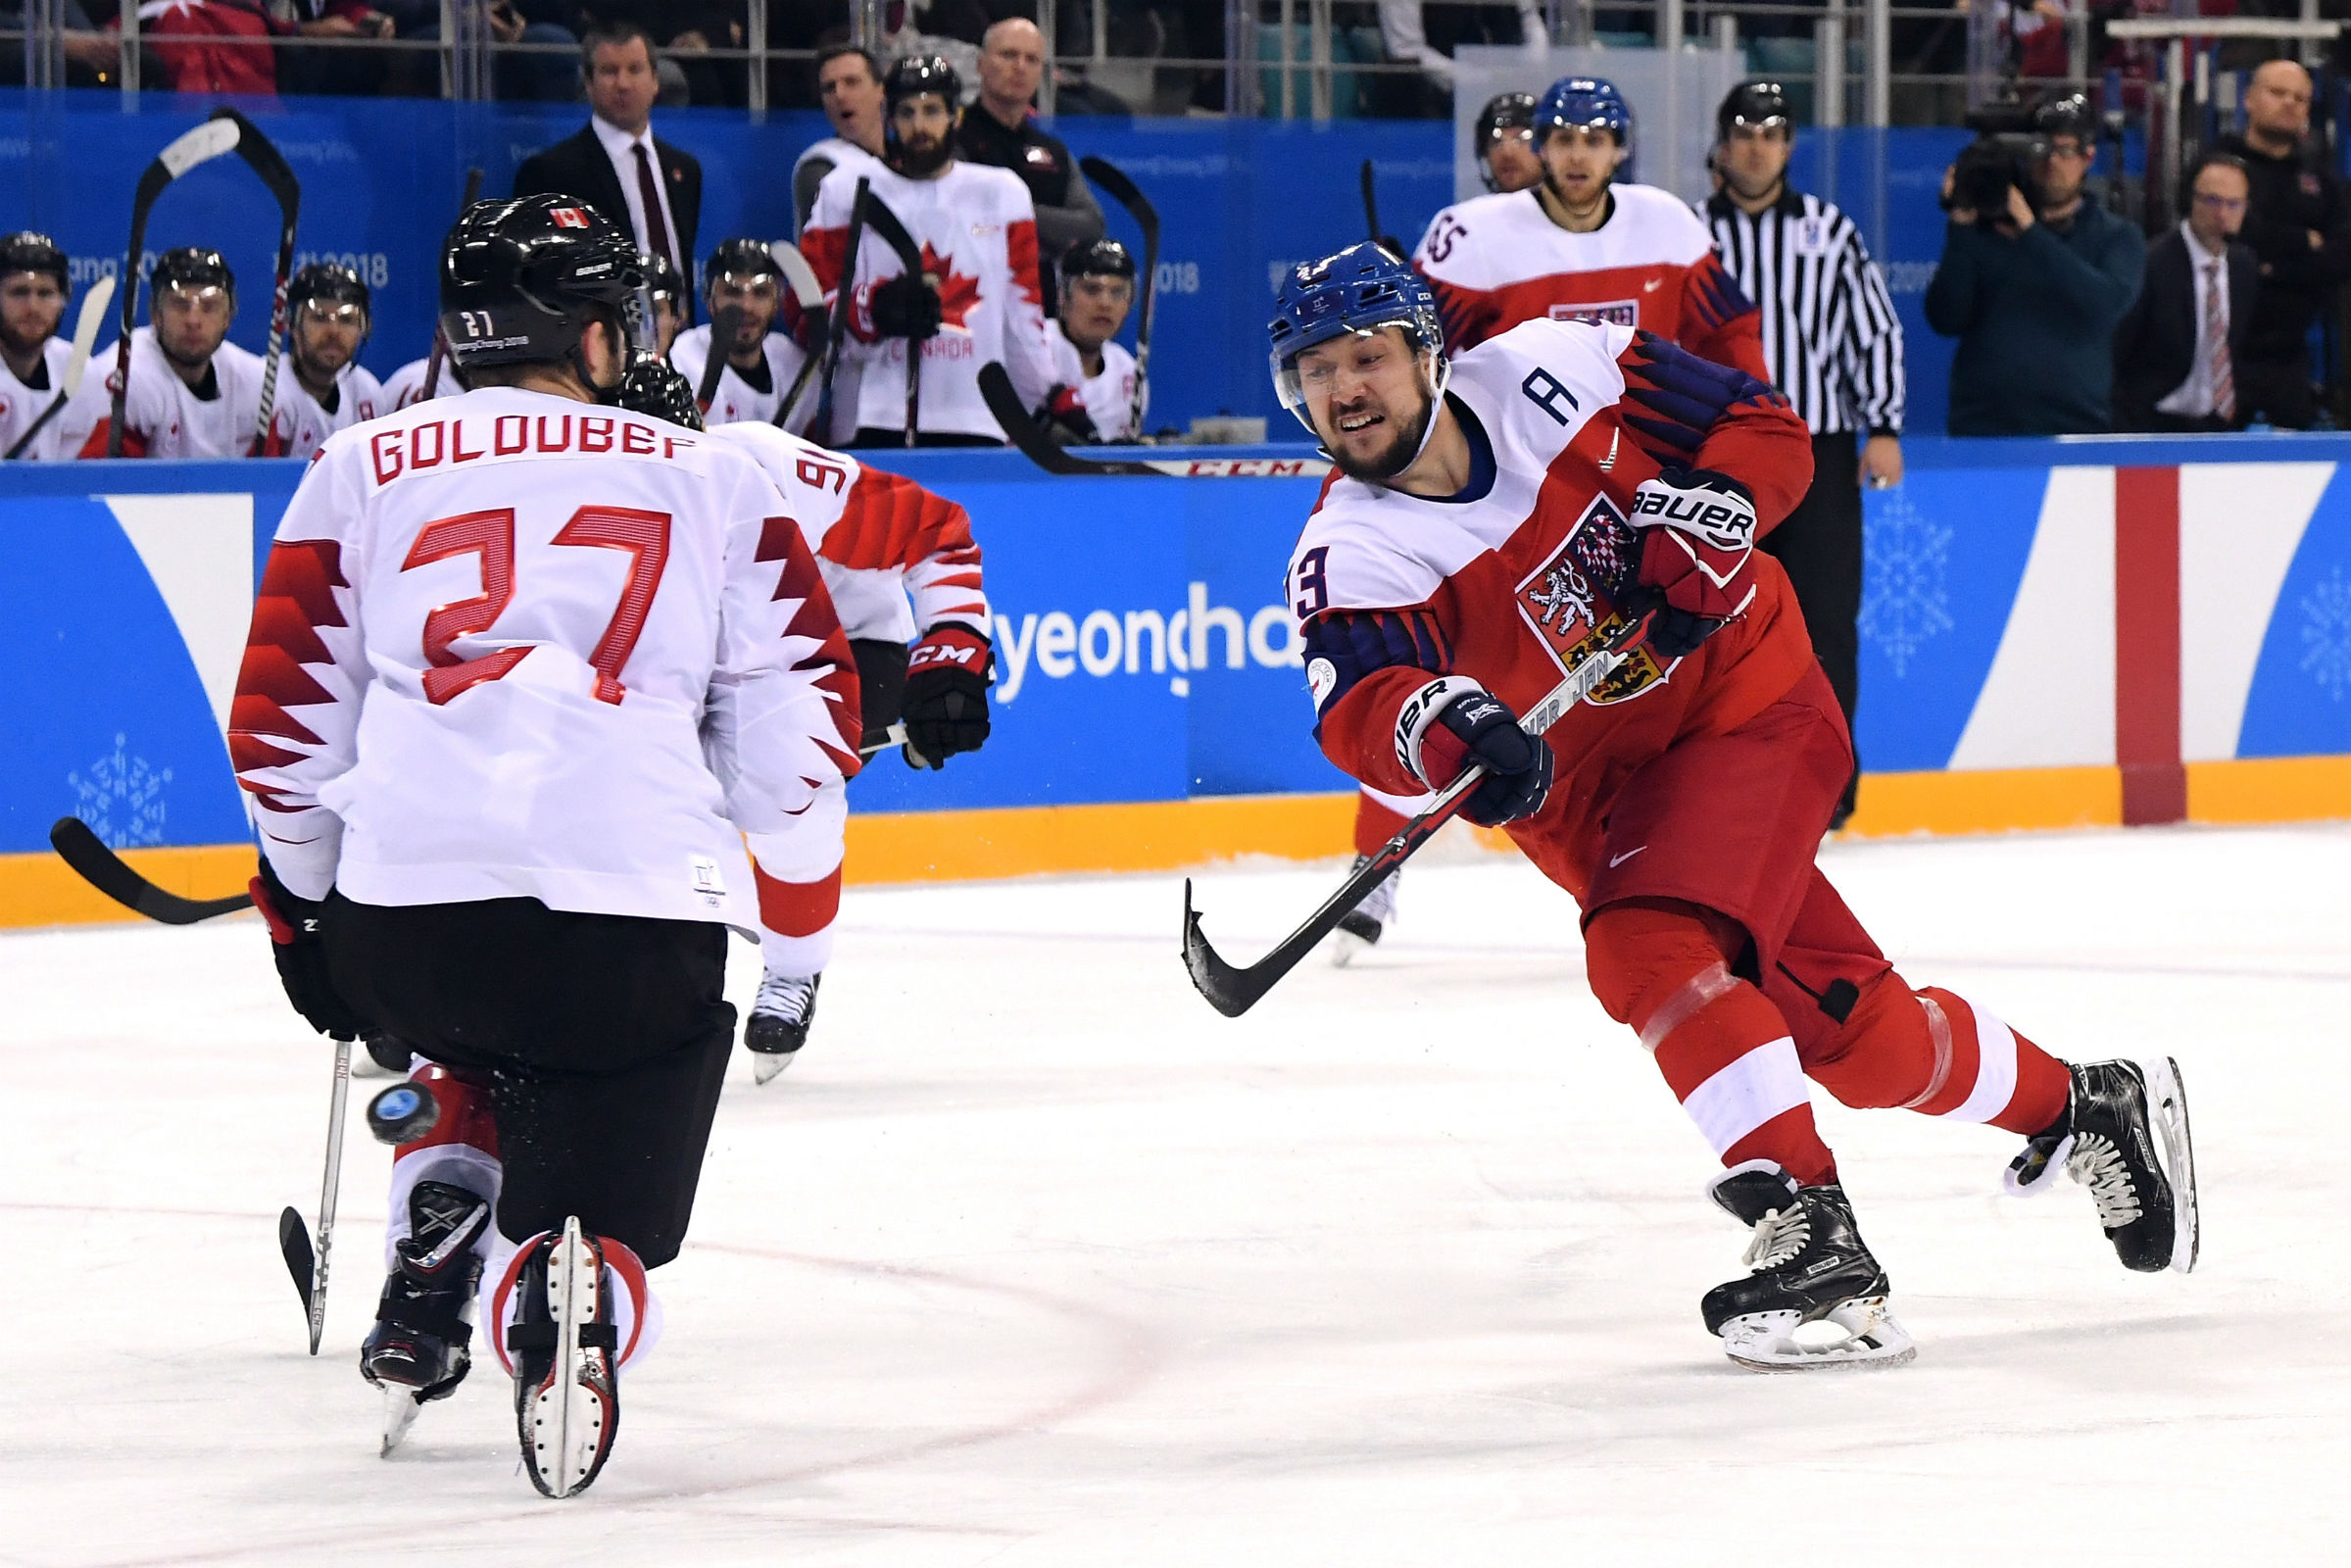 Ice Hockey - Men Bronze Medal Game